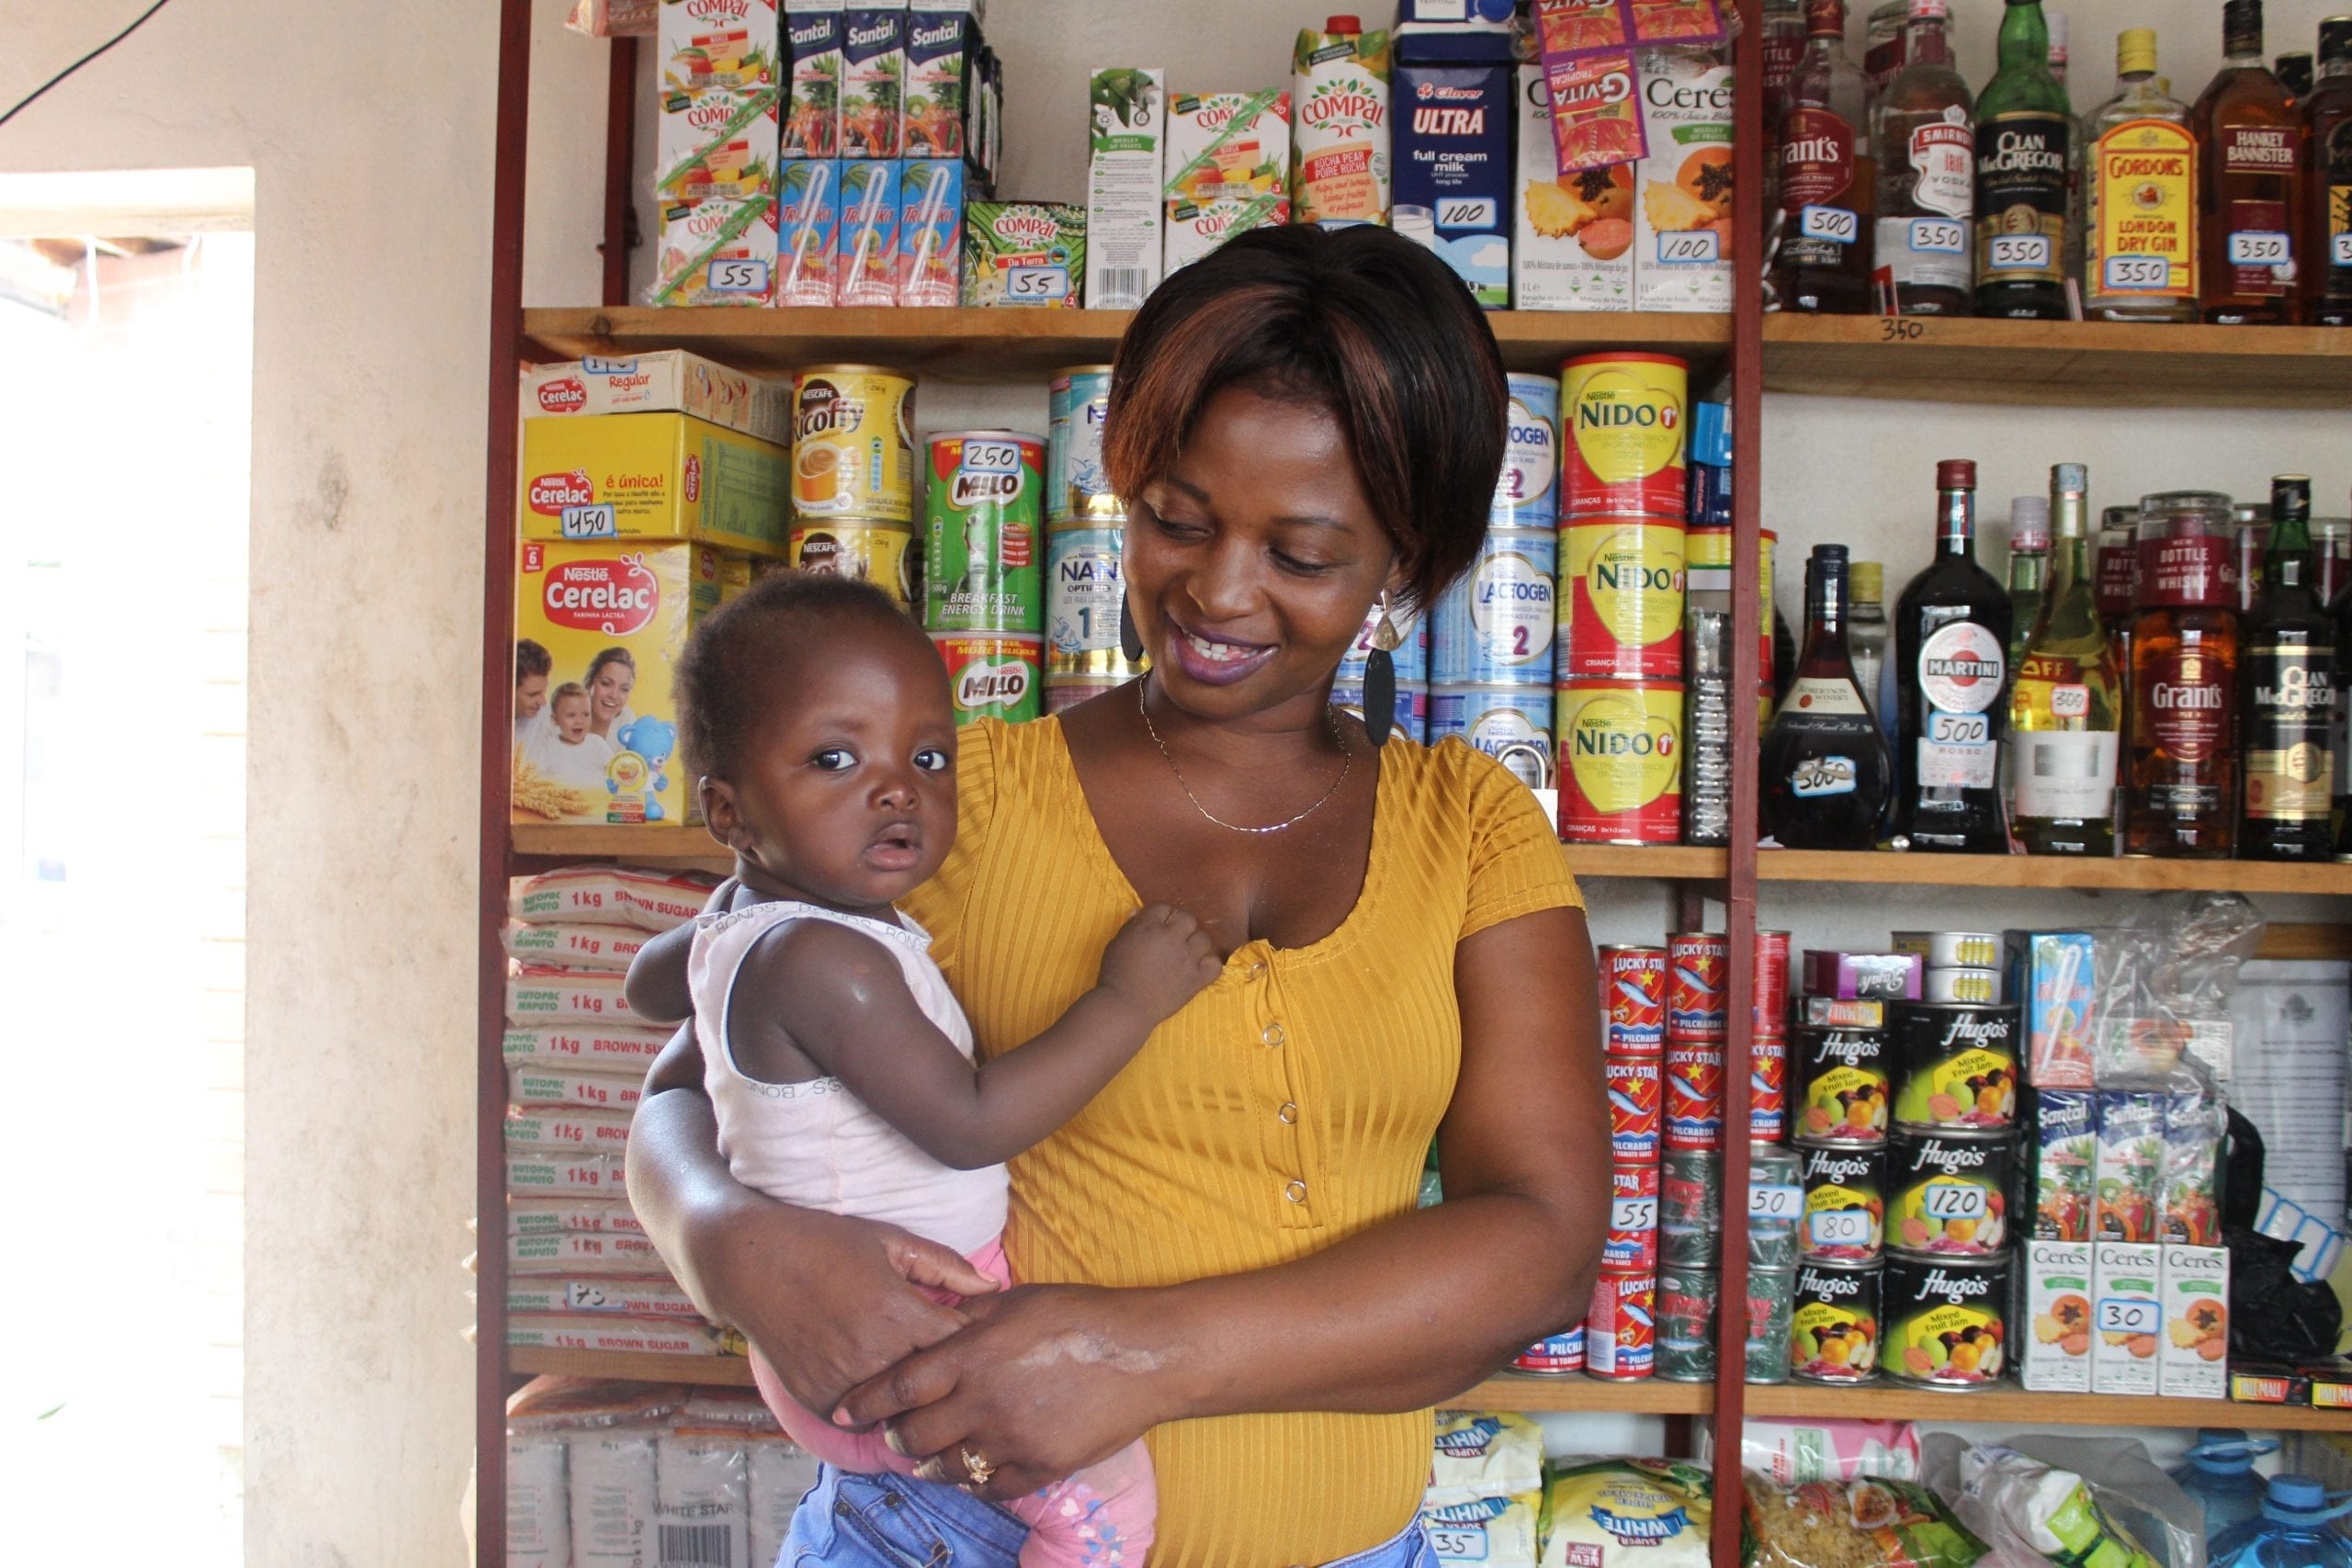 Many women leaders in developing countries are also mothers, like Bernadette Sambo who owns a small grocery store near Maputo, Mozambique.